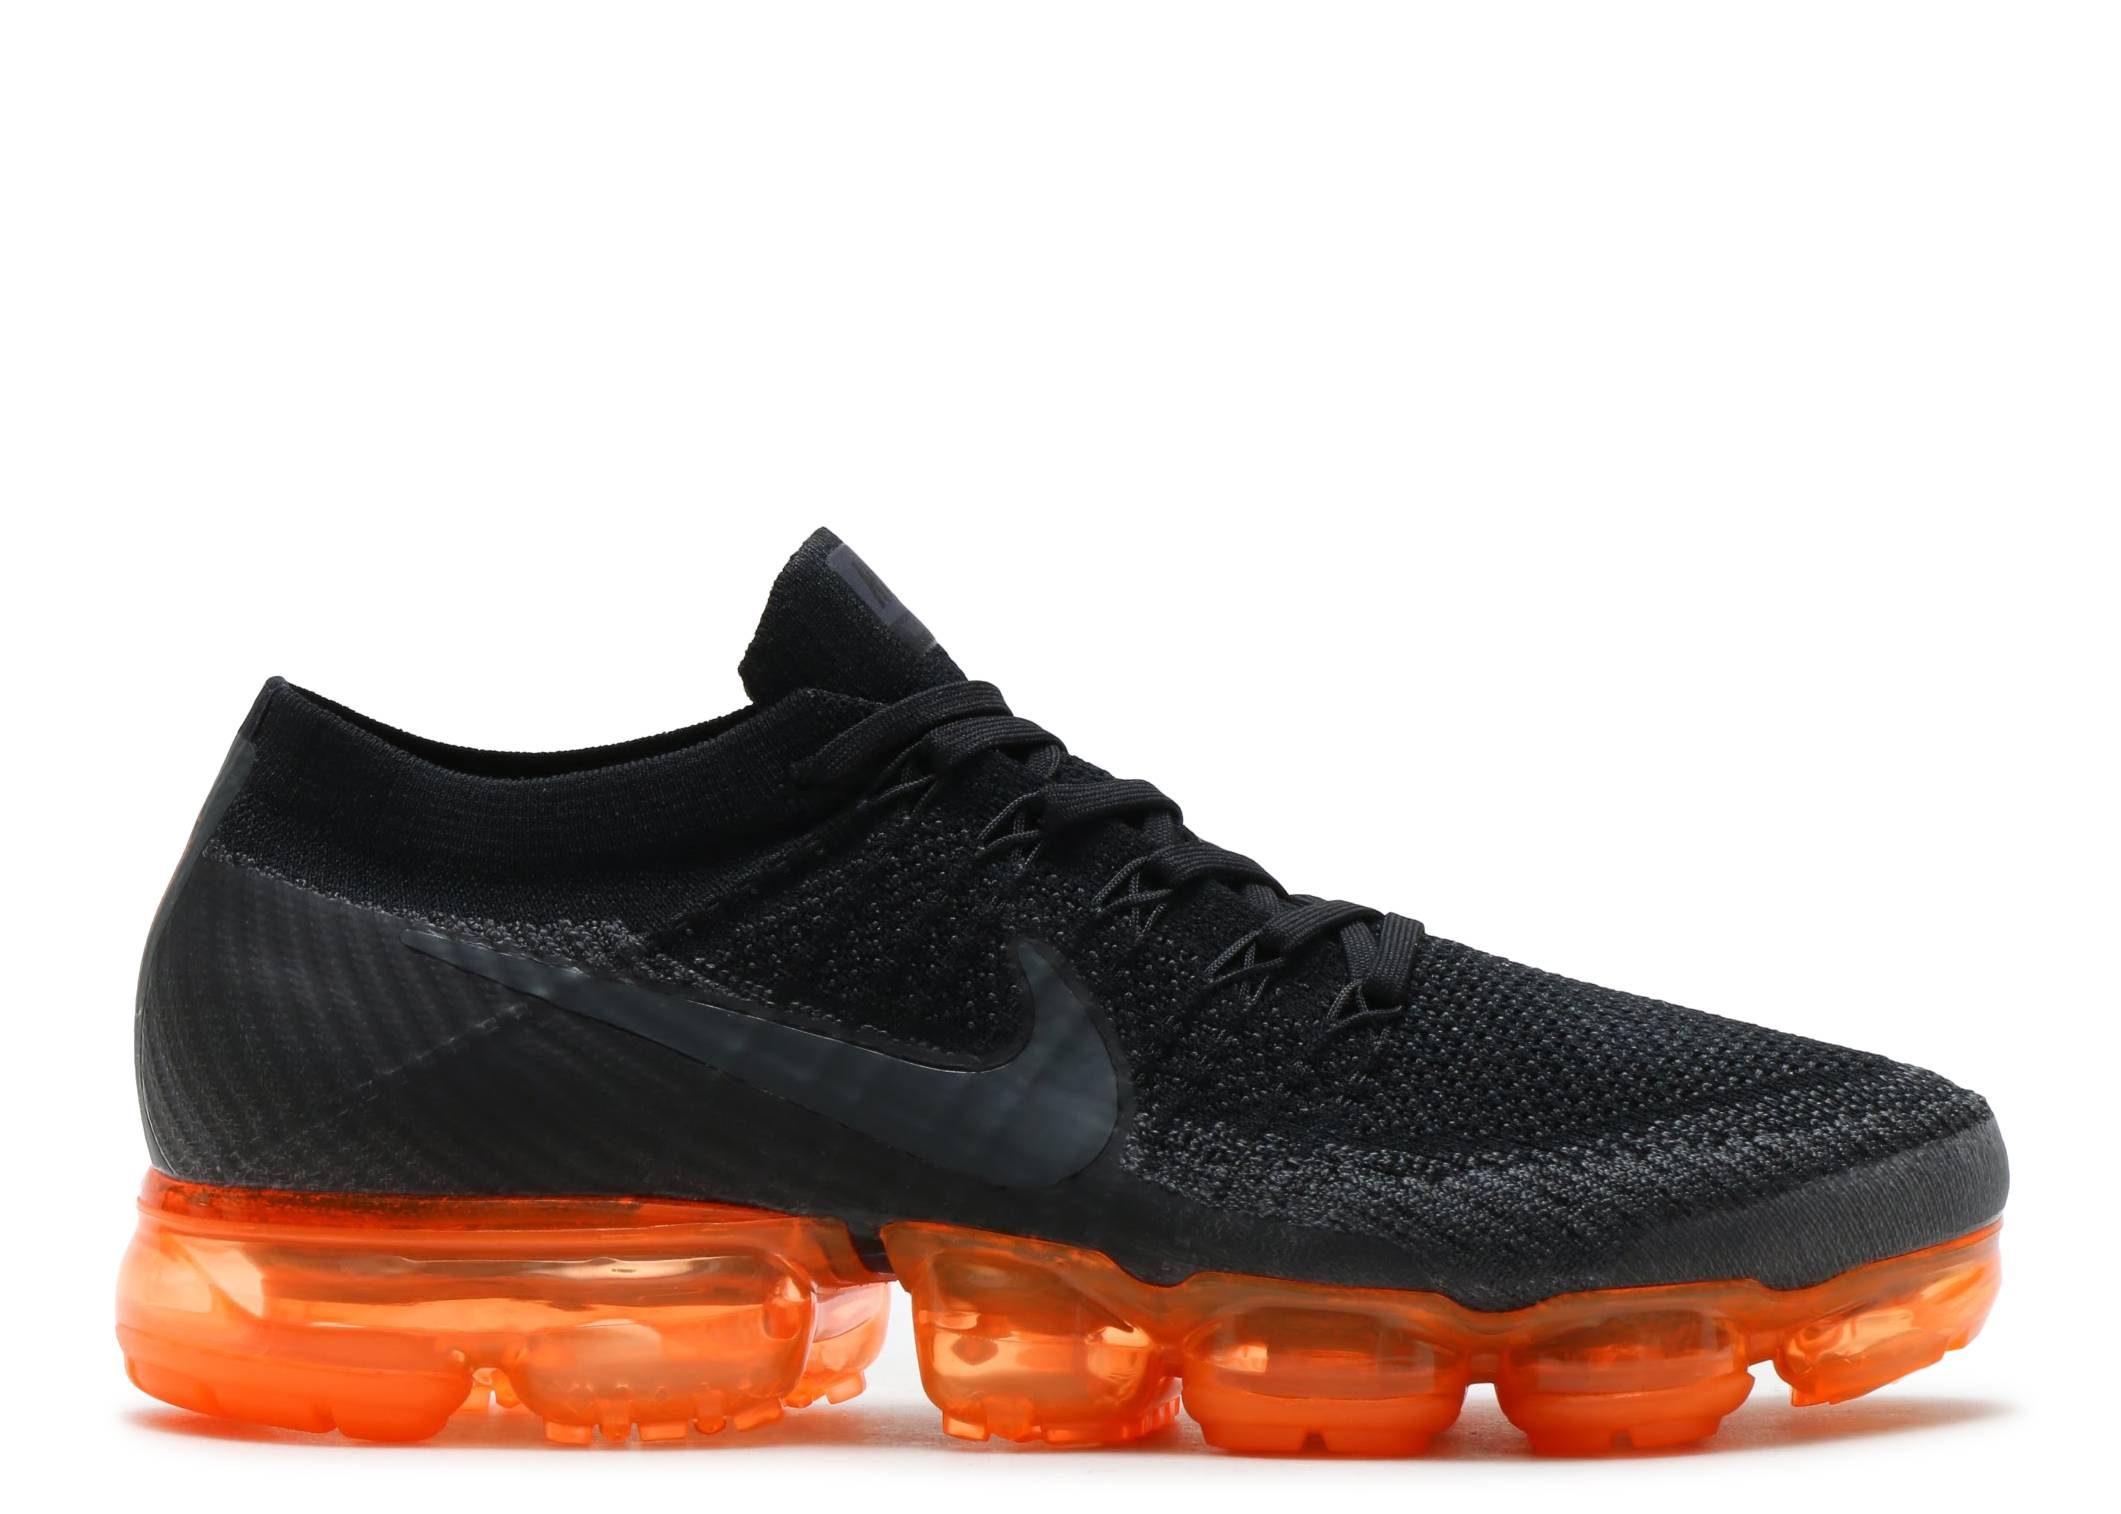 AIR VAPORMAX FLYKNIT - Nike - ah8449 001 - anthracite anthracite ... 066d470d8265